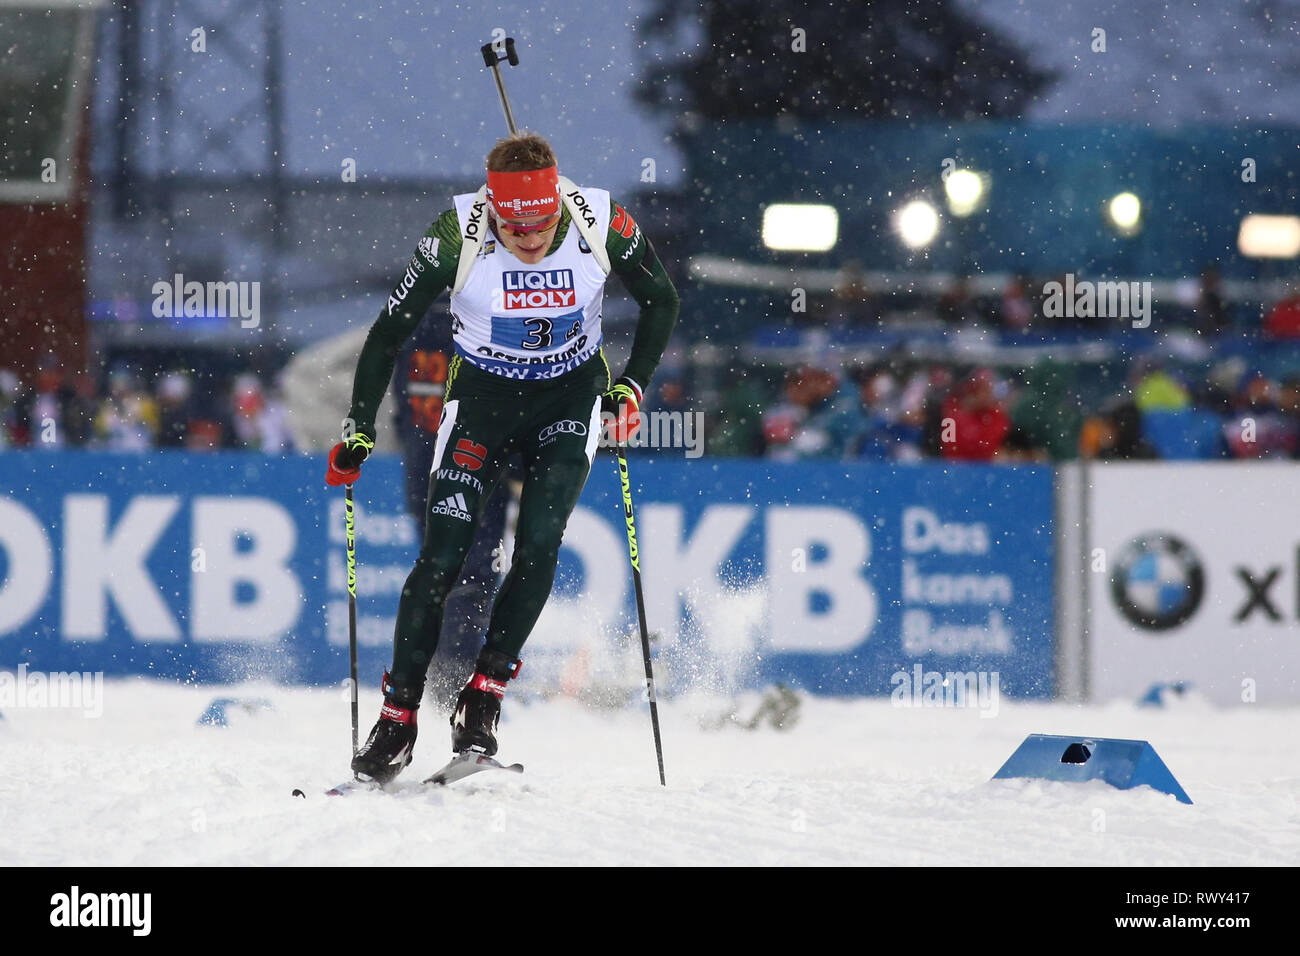 Ostersund, Sweden. 7th Mar, 2019. IBU World Championships Biathlon, mixed relay; Benedikt Doll (GER) in action Credit: Action Plus Sports/Alamy Live News - Stock Image